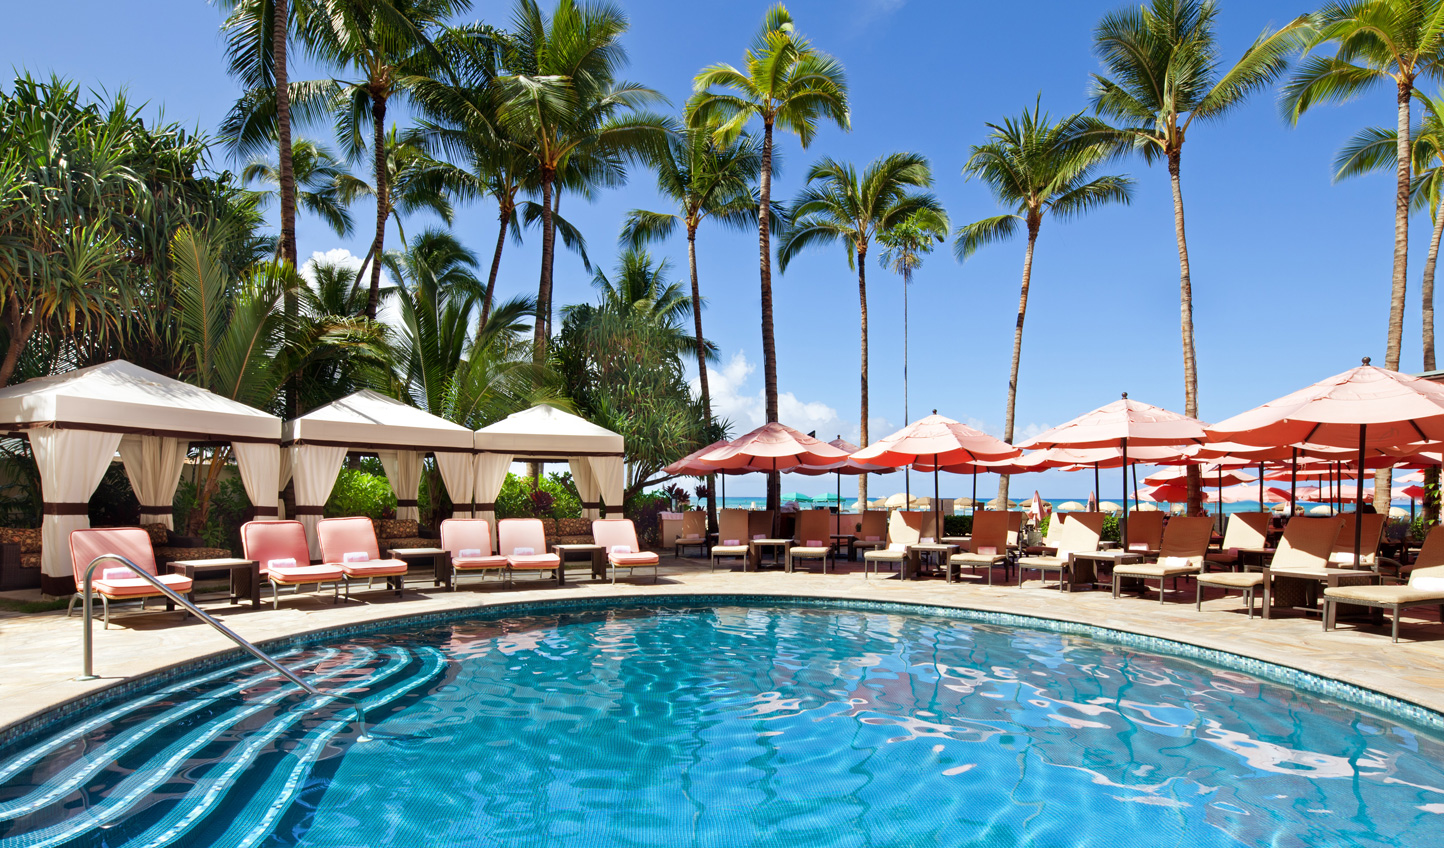 Relax by the pool at the Royal Hawaiian